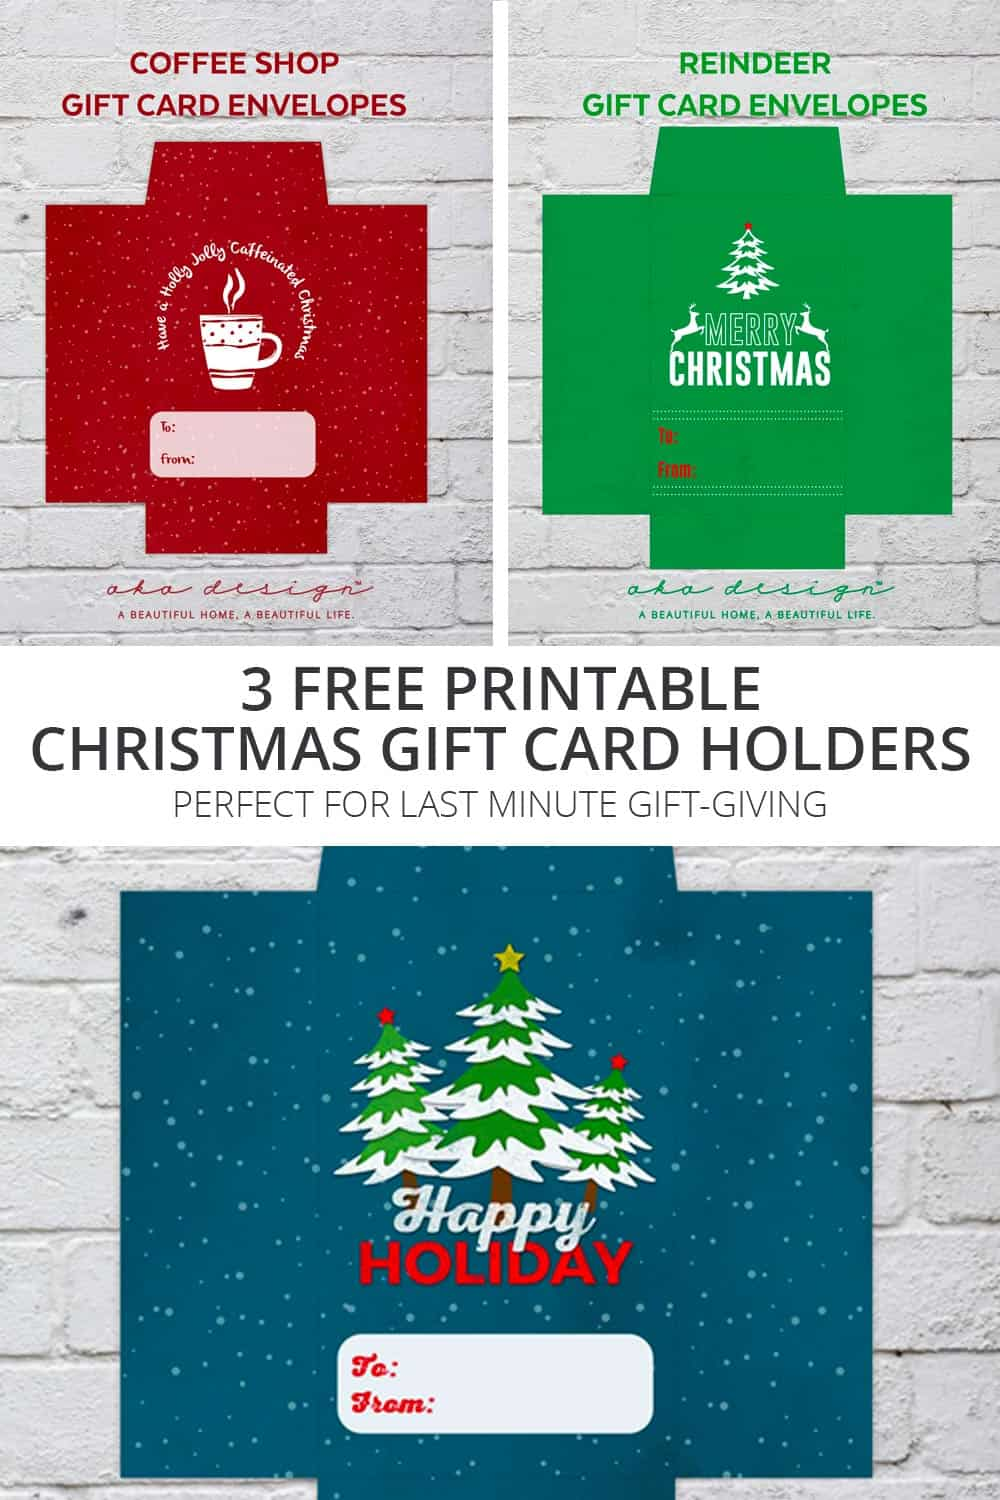 3 Free Printable Christmas Gift Card Holders For Last Minute Gift